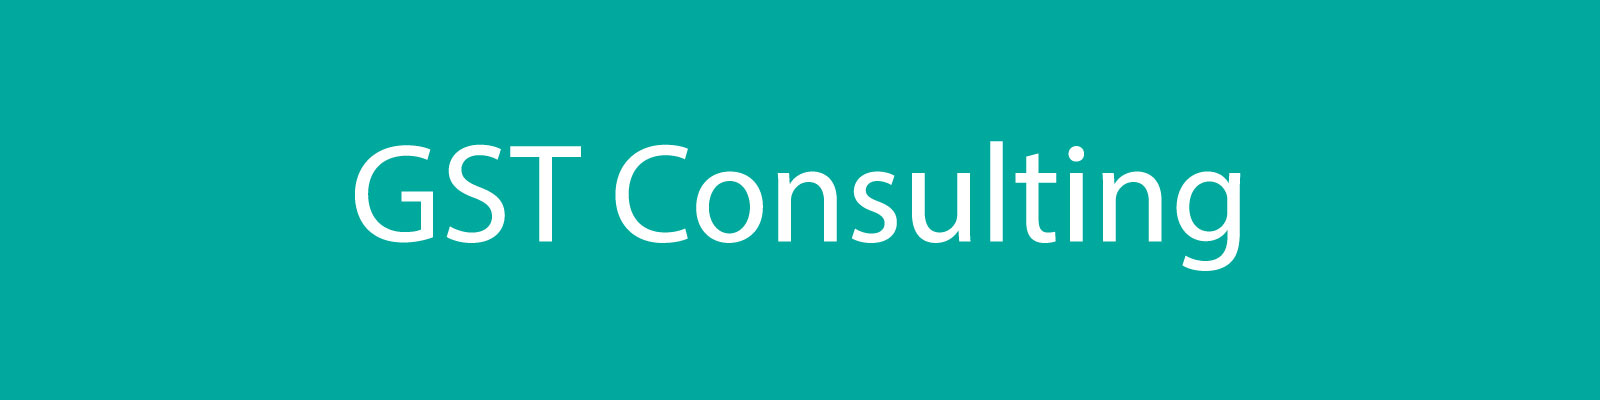 gst_consulting